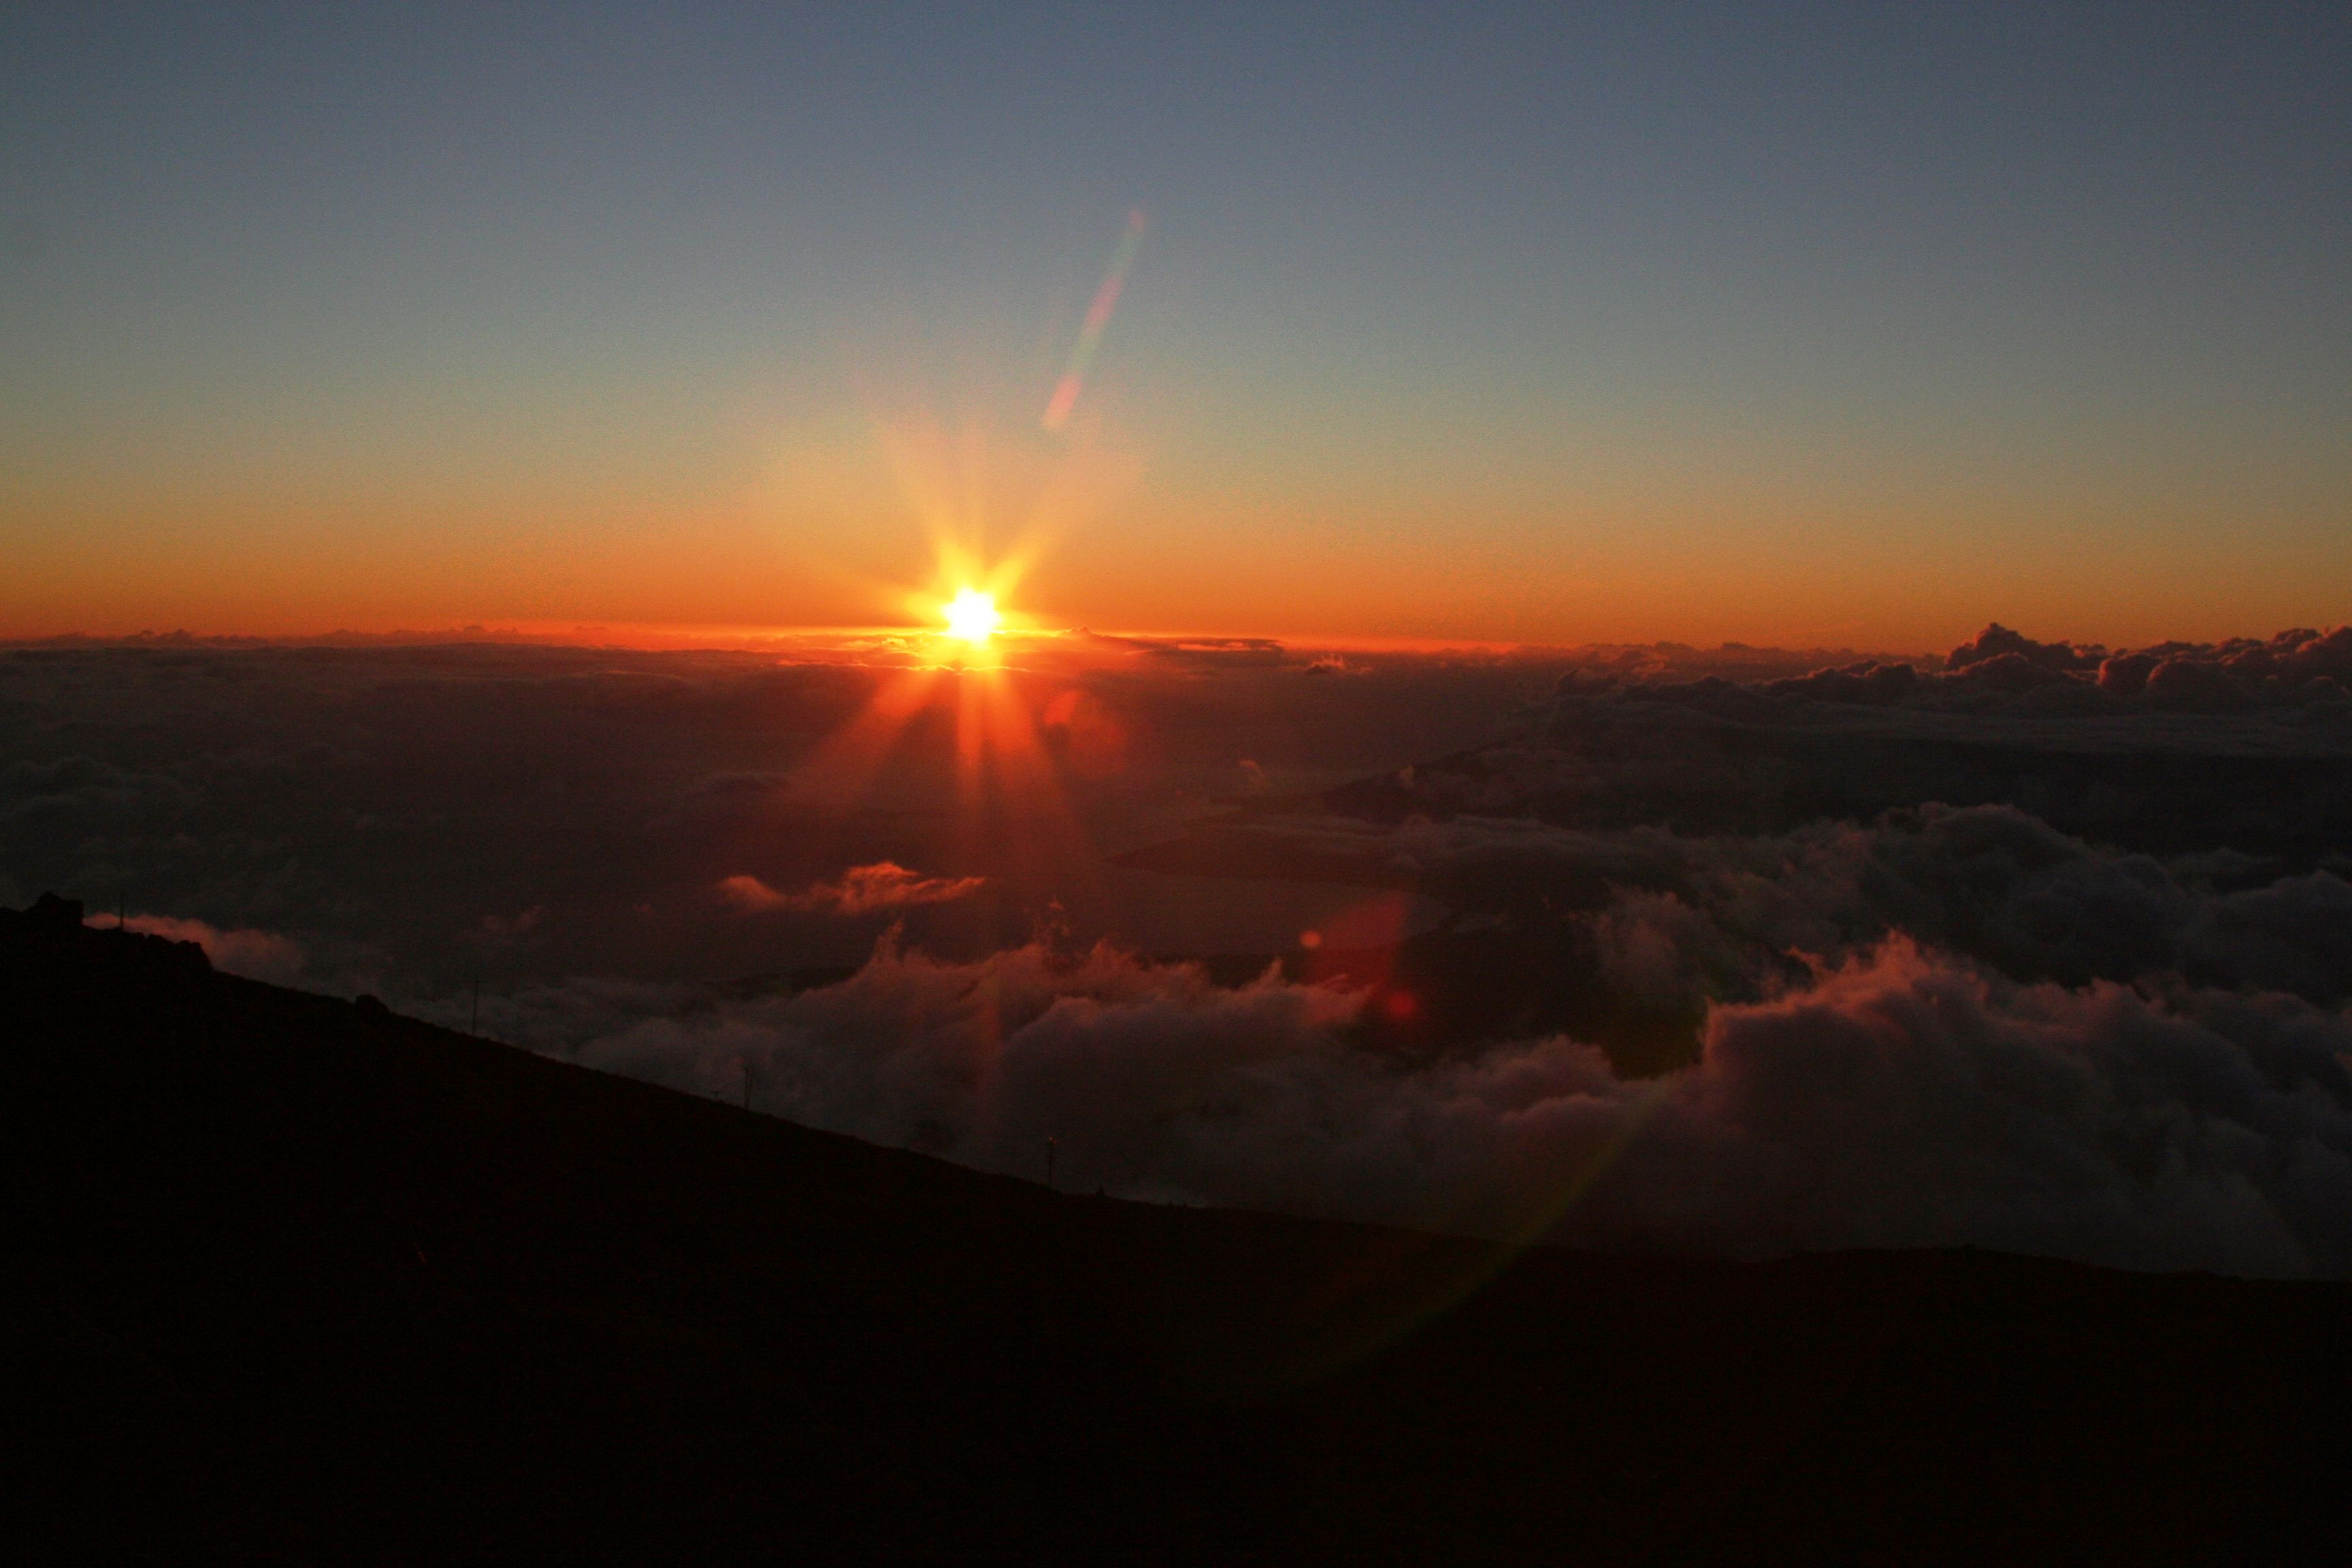 Sunset view from the summit at Haleakala NP, HI